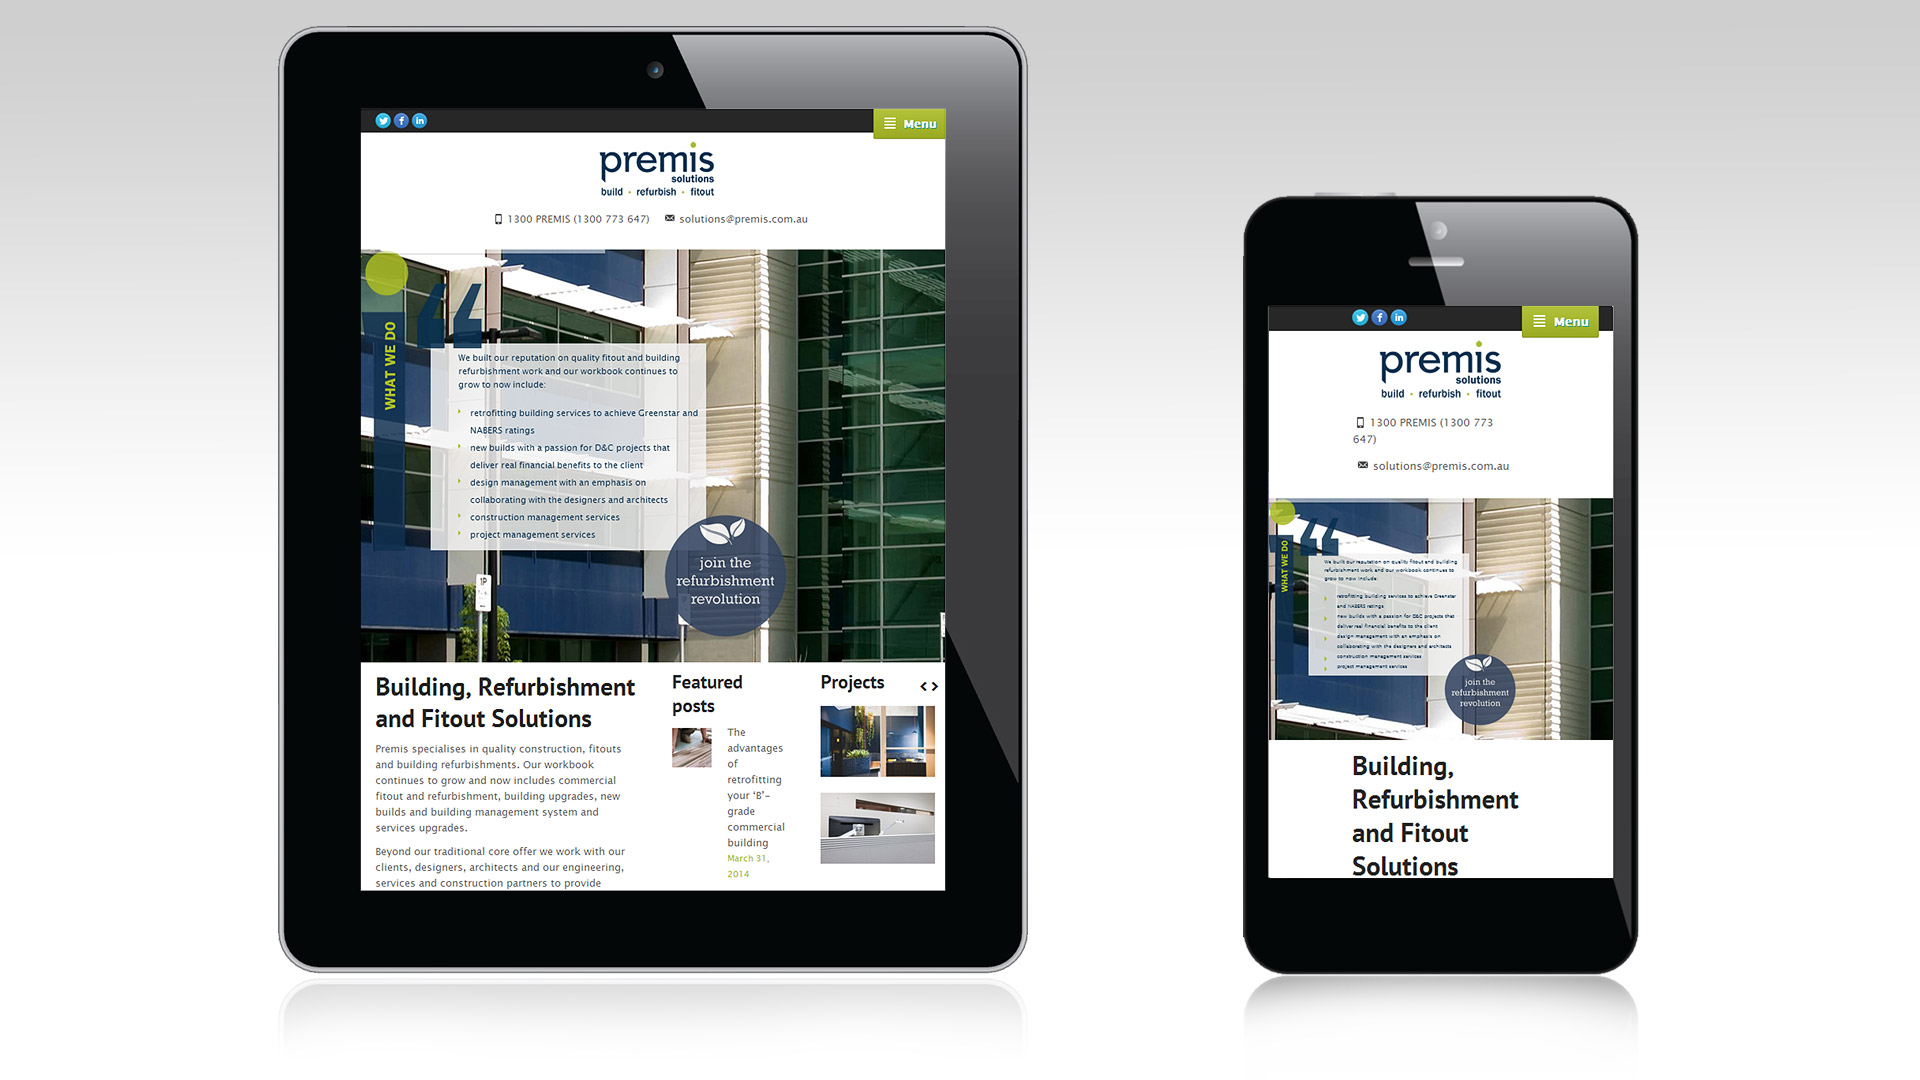 Premis responsive views for tablet and mobile